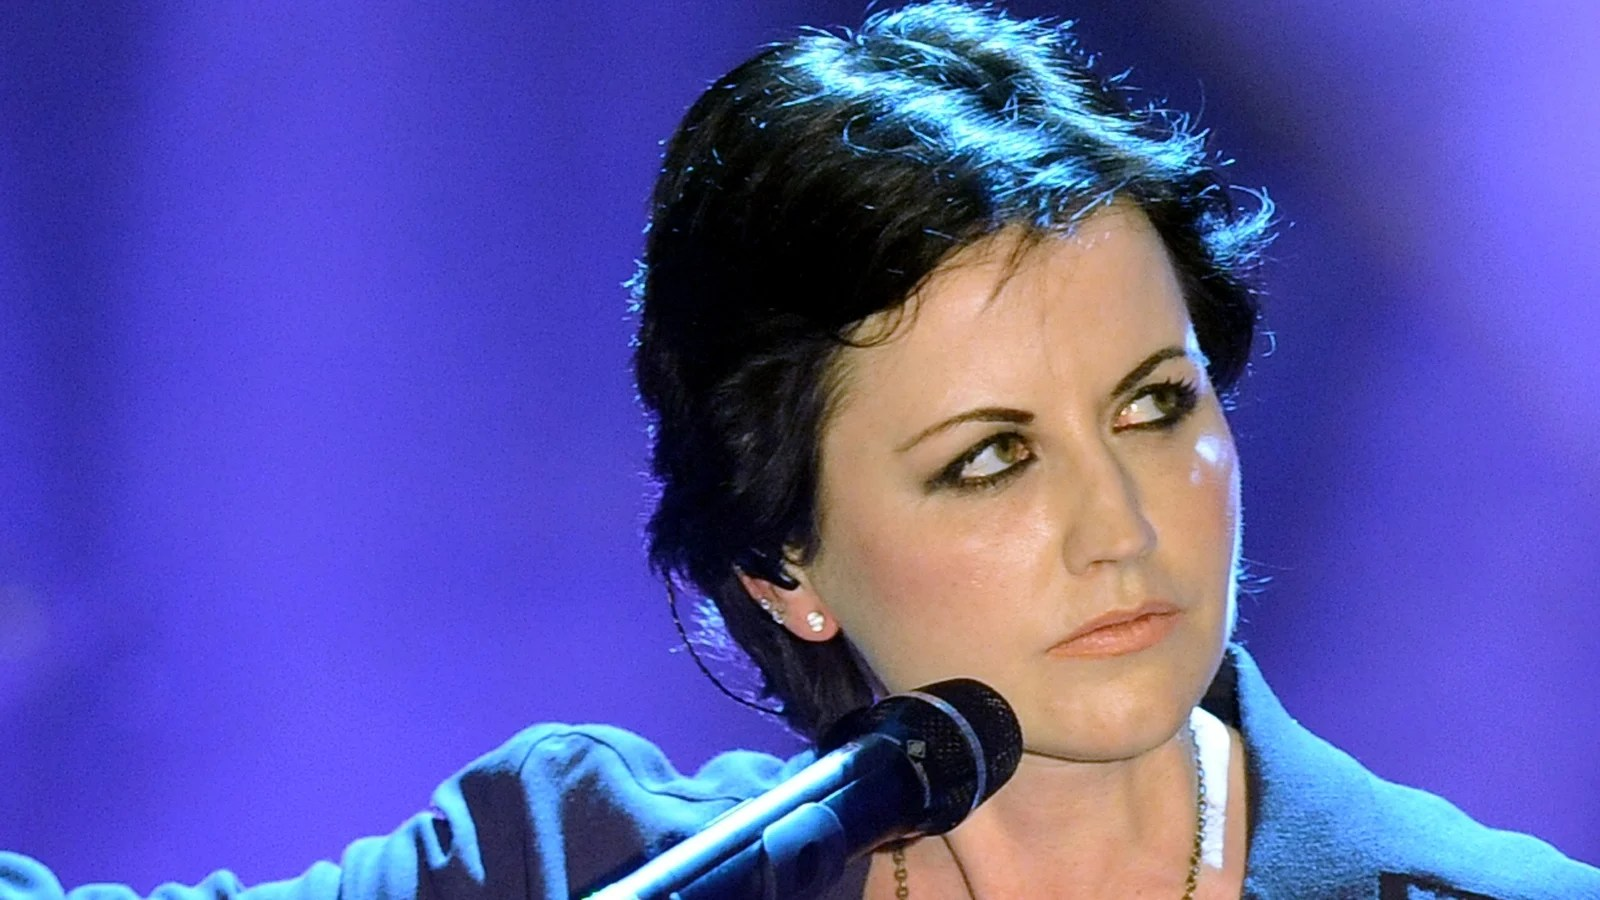 Dolores O'Riordan opens up about her darkest days